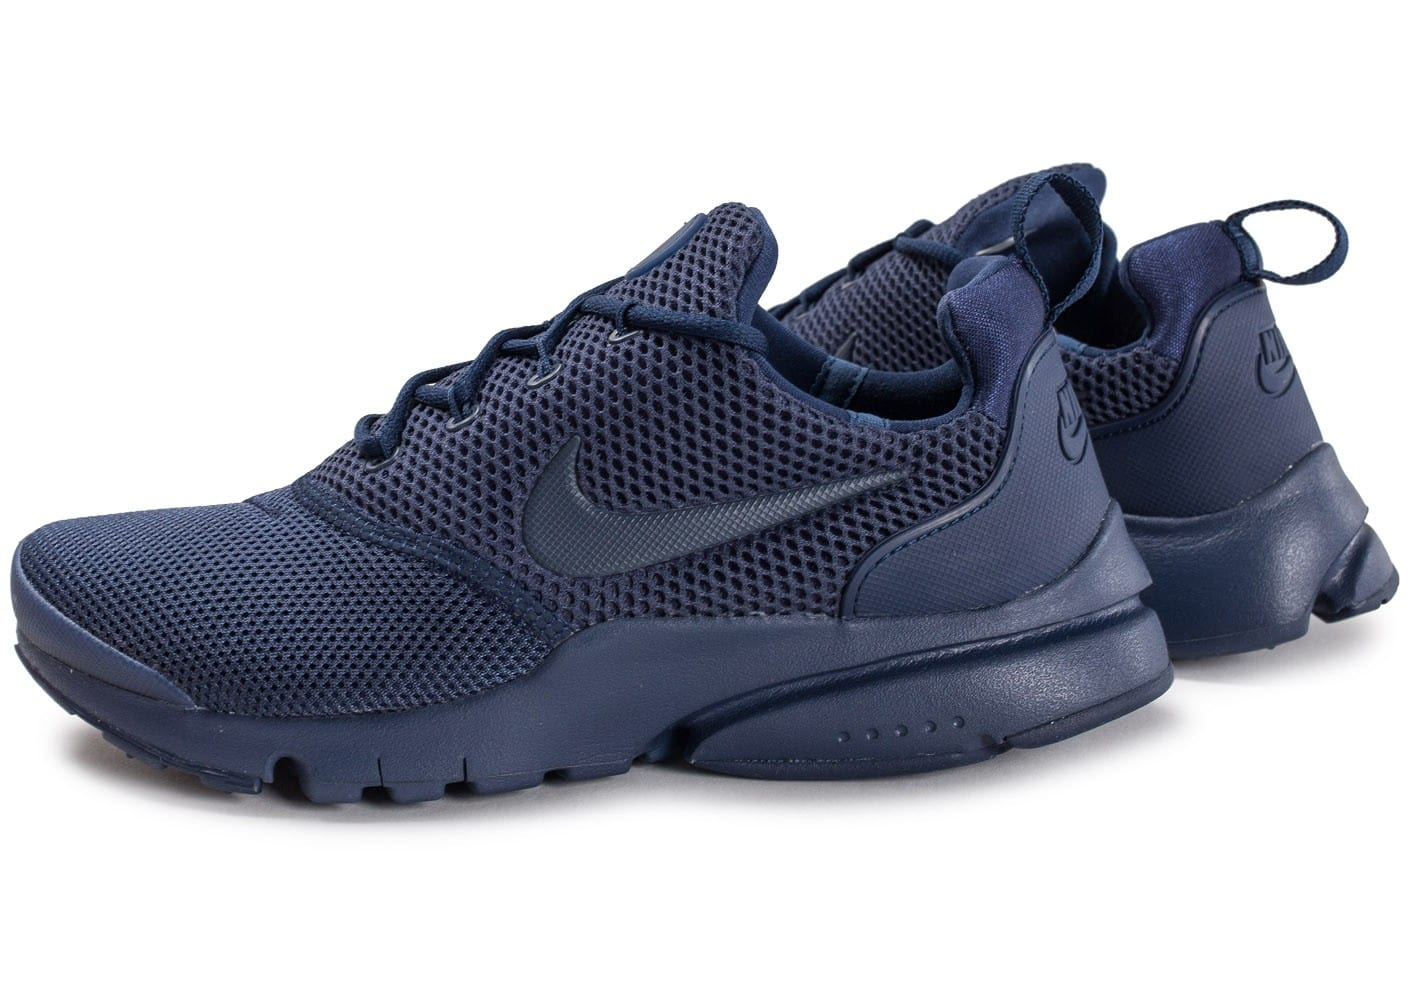 hot sale online 005ce fa55a nike air presto femme chausport